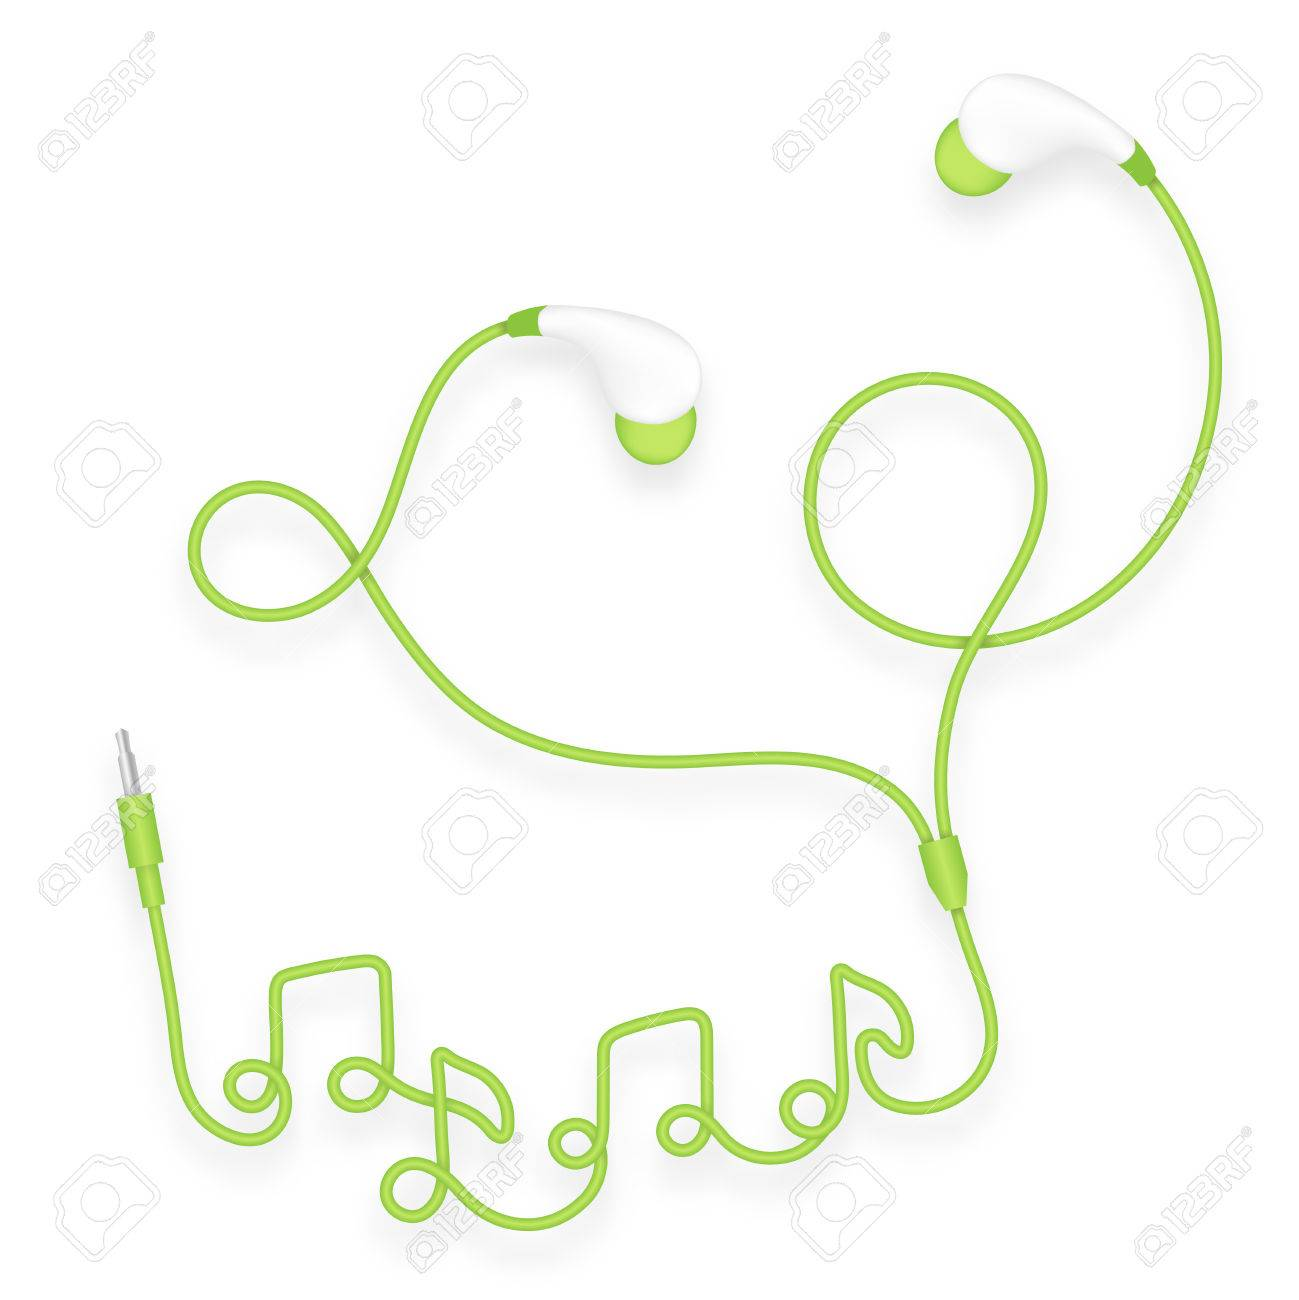 Earphones In Ear Type Green Color And Music Note Symbol Made